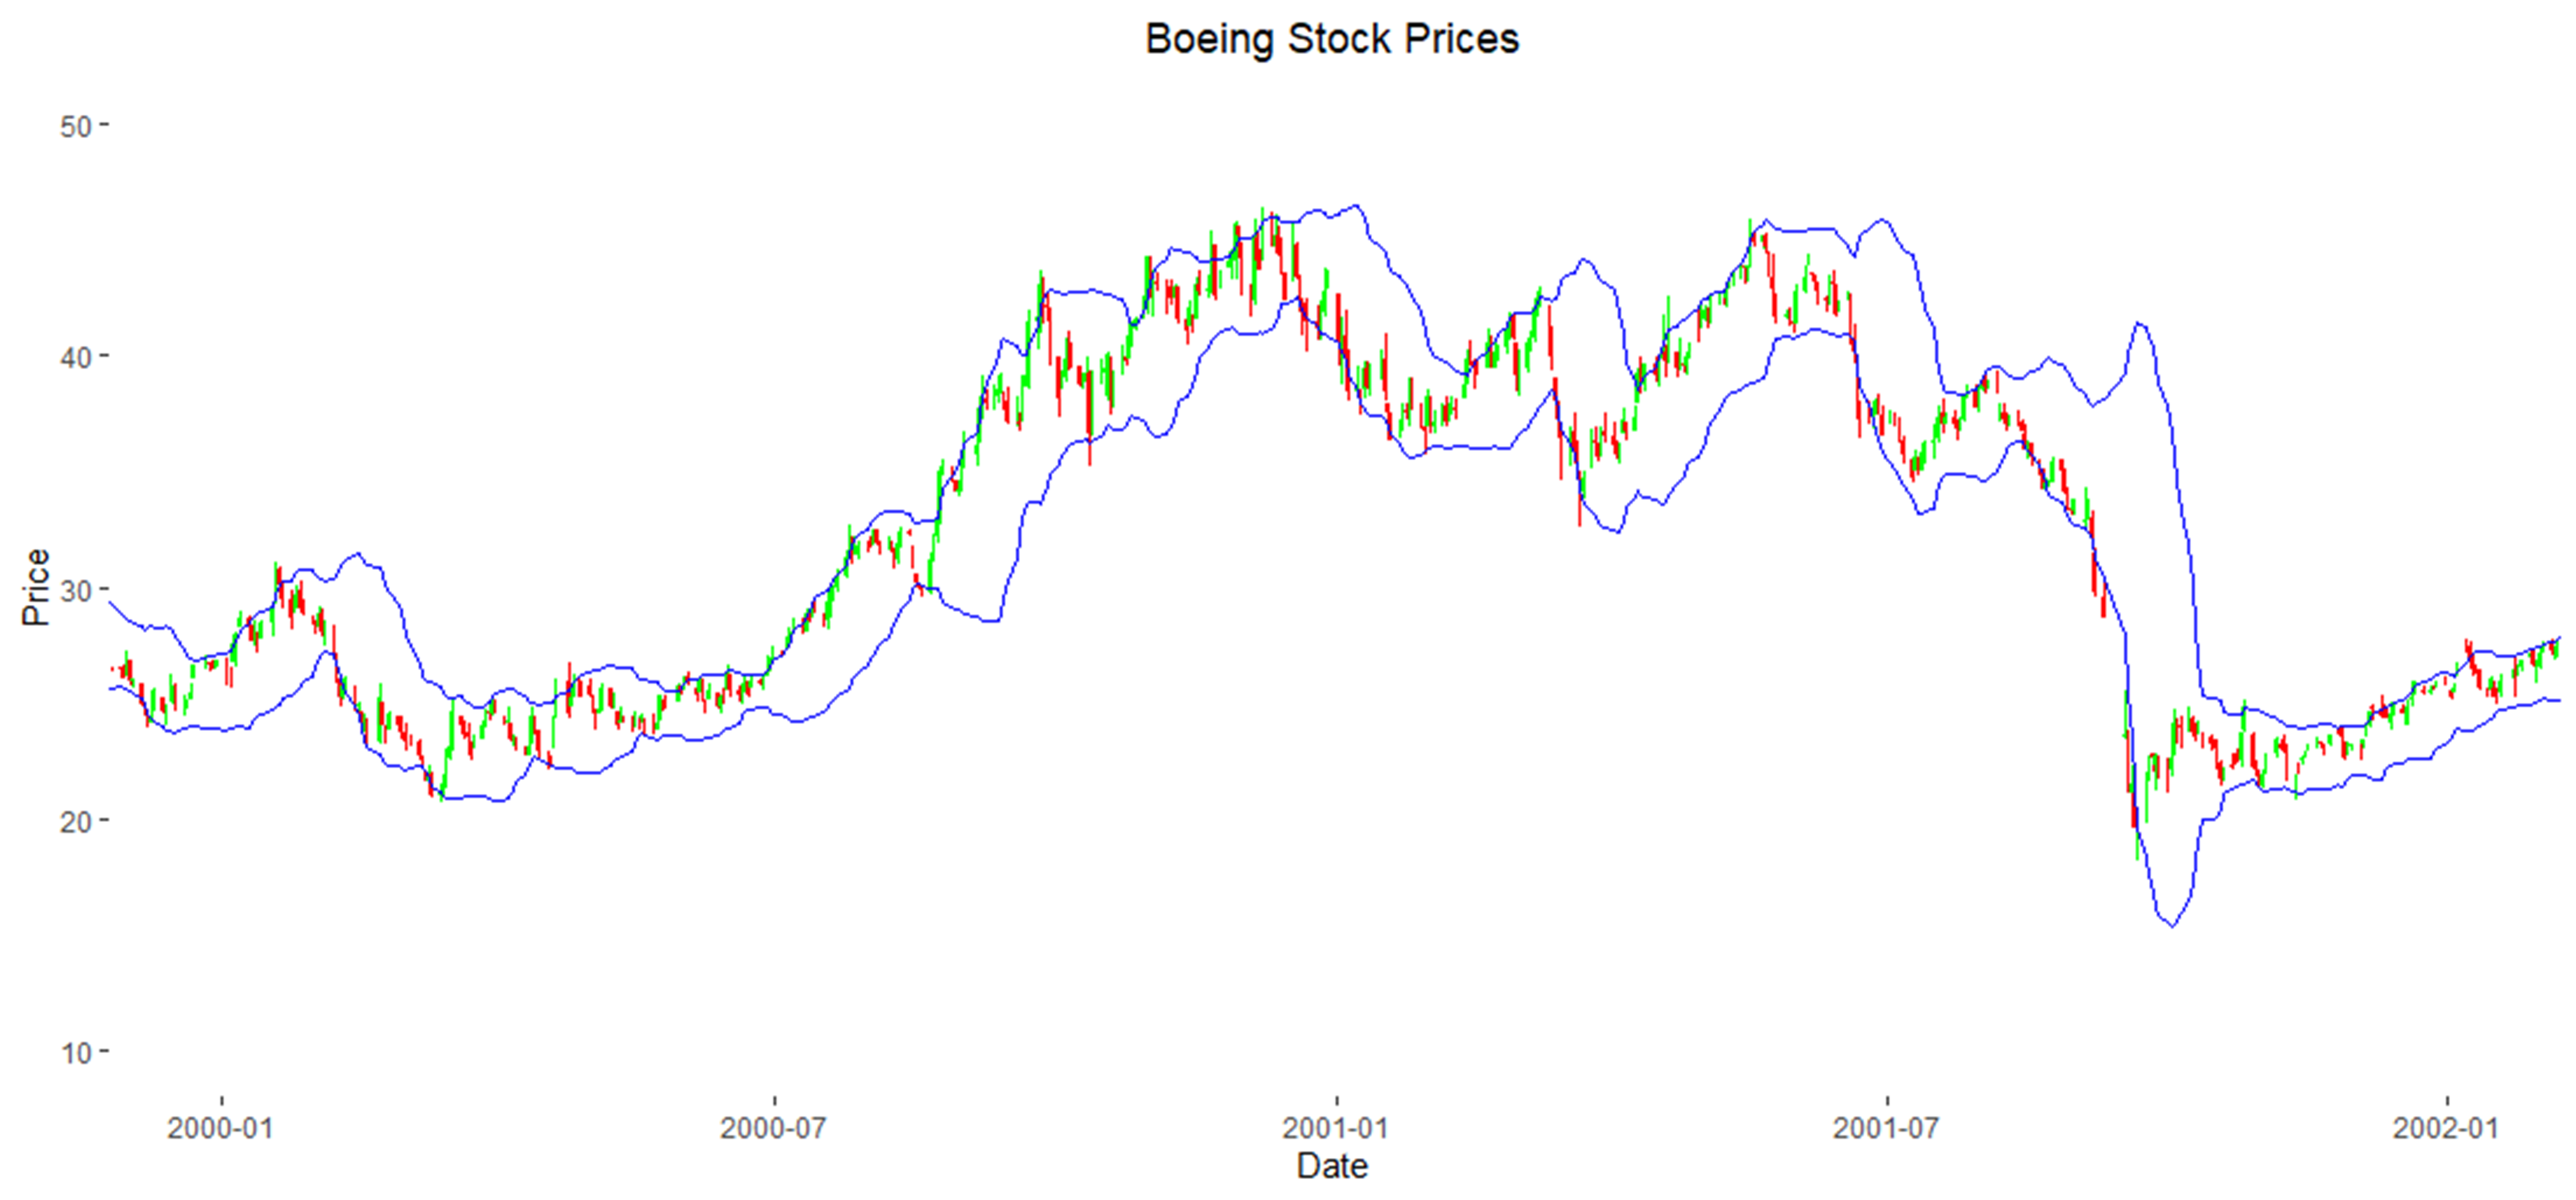 Boeing Stock Price with Bollinger Bands